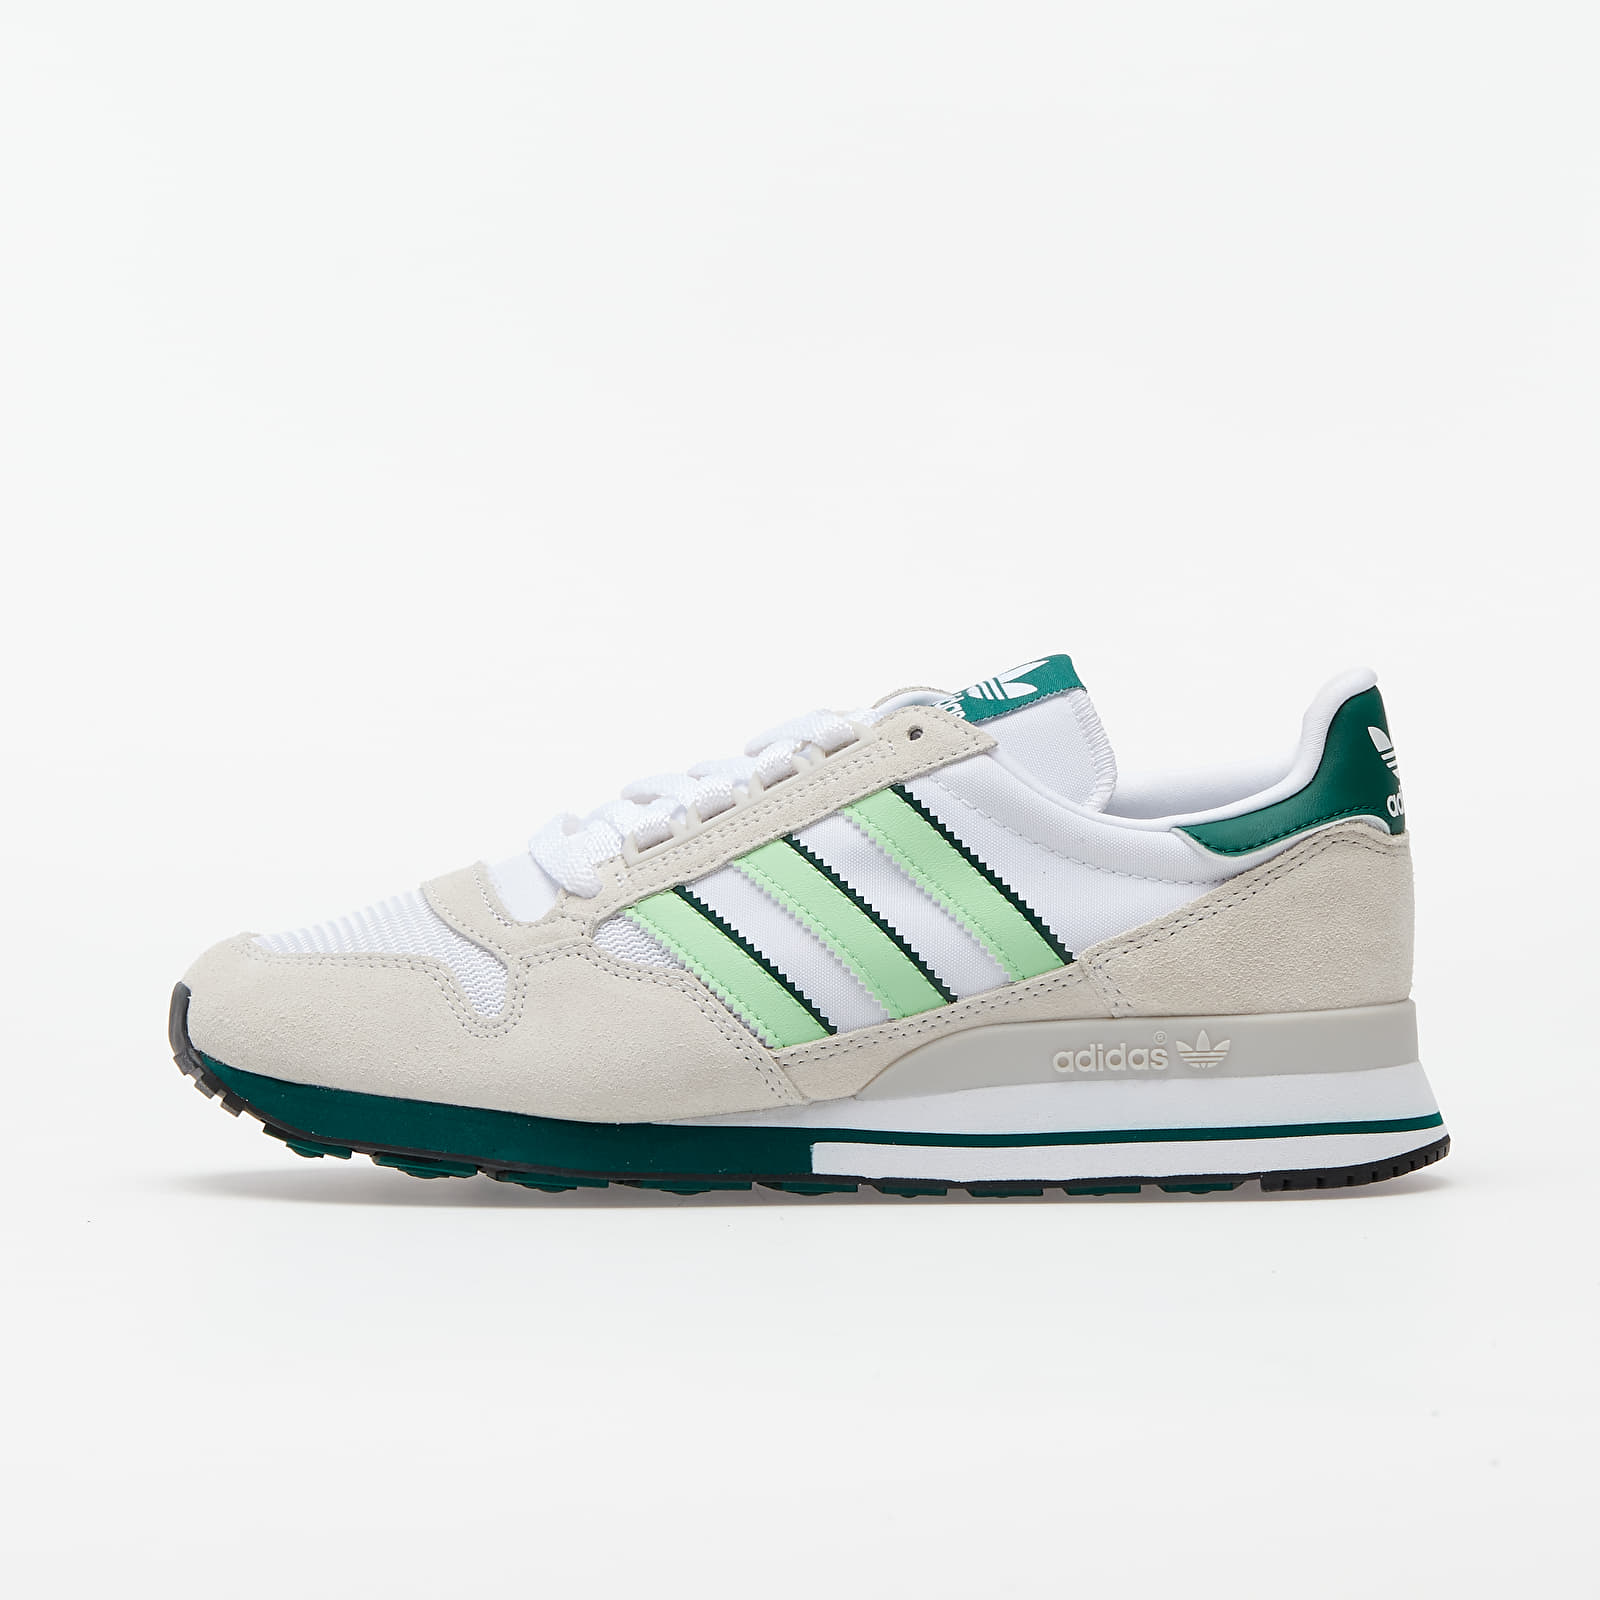 Women's shoes adidas ZX 500 W Crystal White/ Glow Mint/ Ftw White